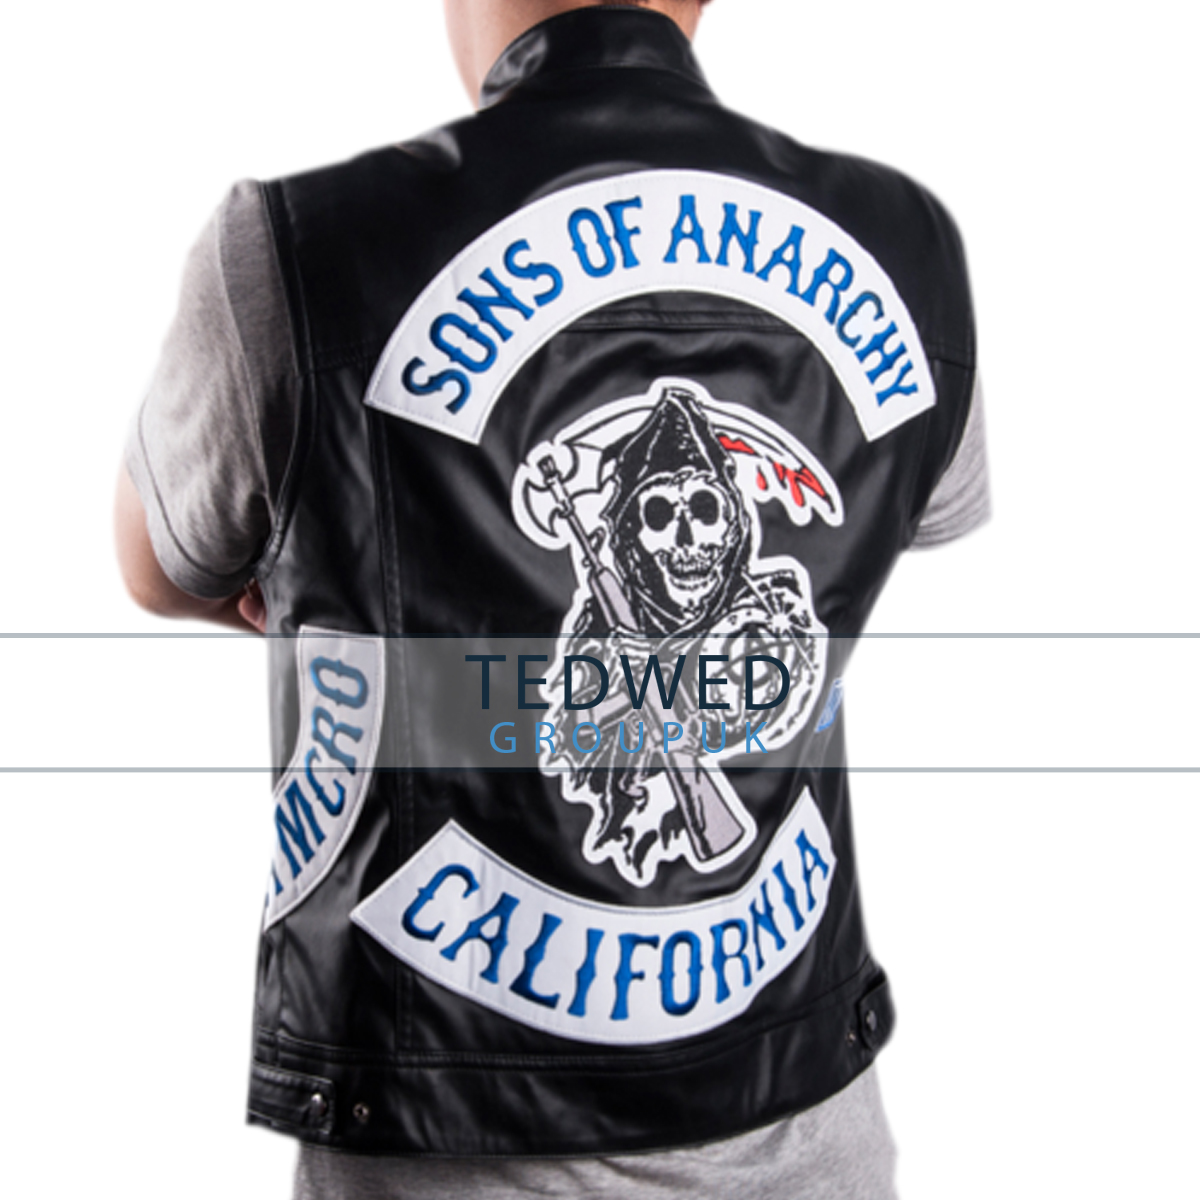 Son of Anarch Jacket Vest